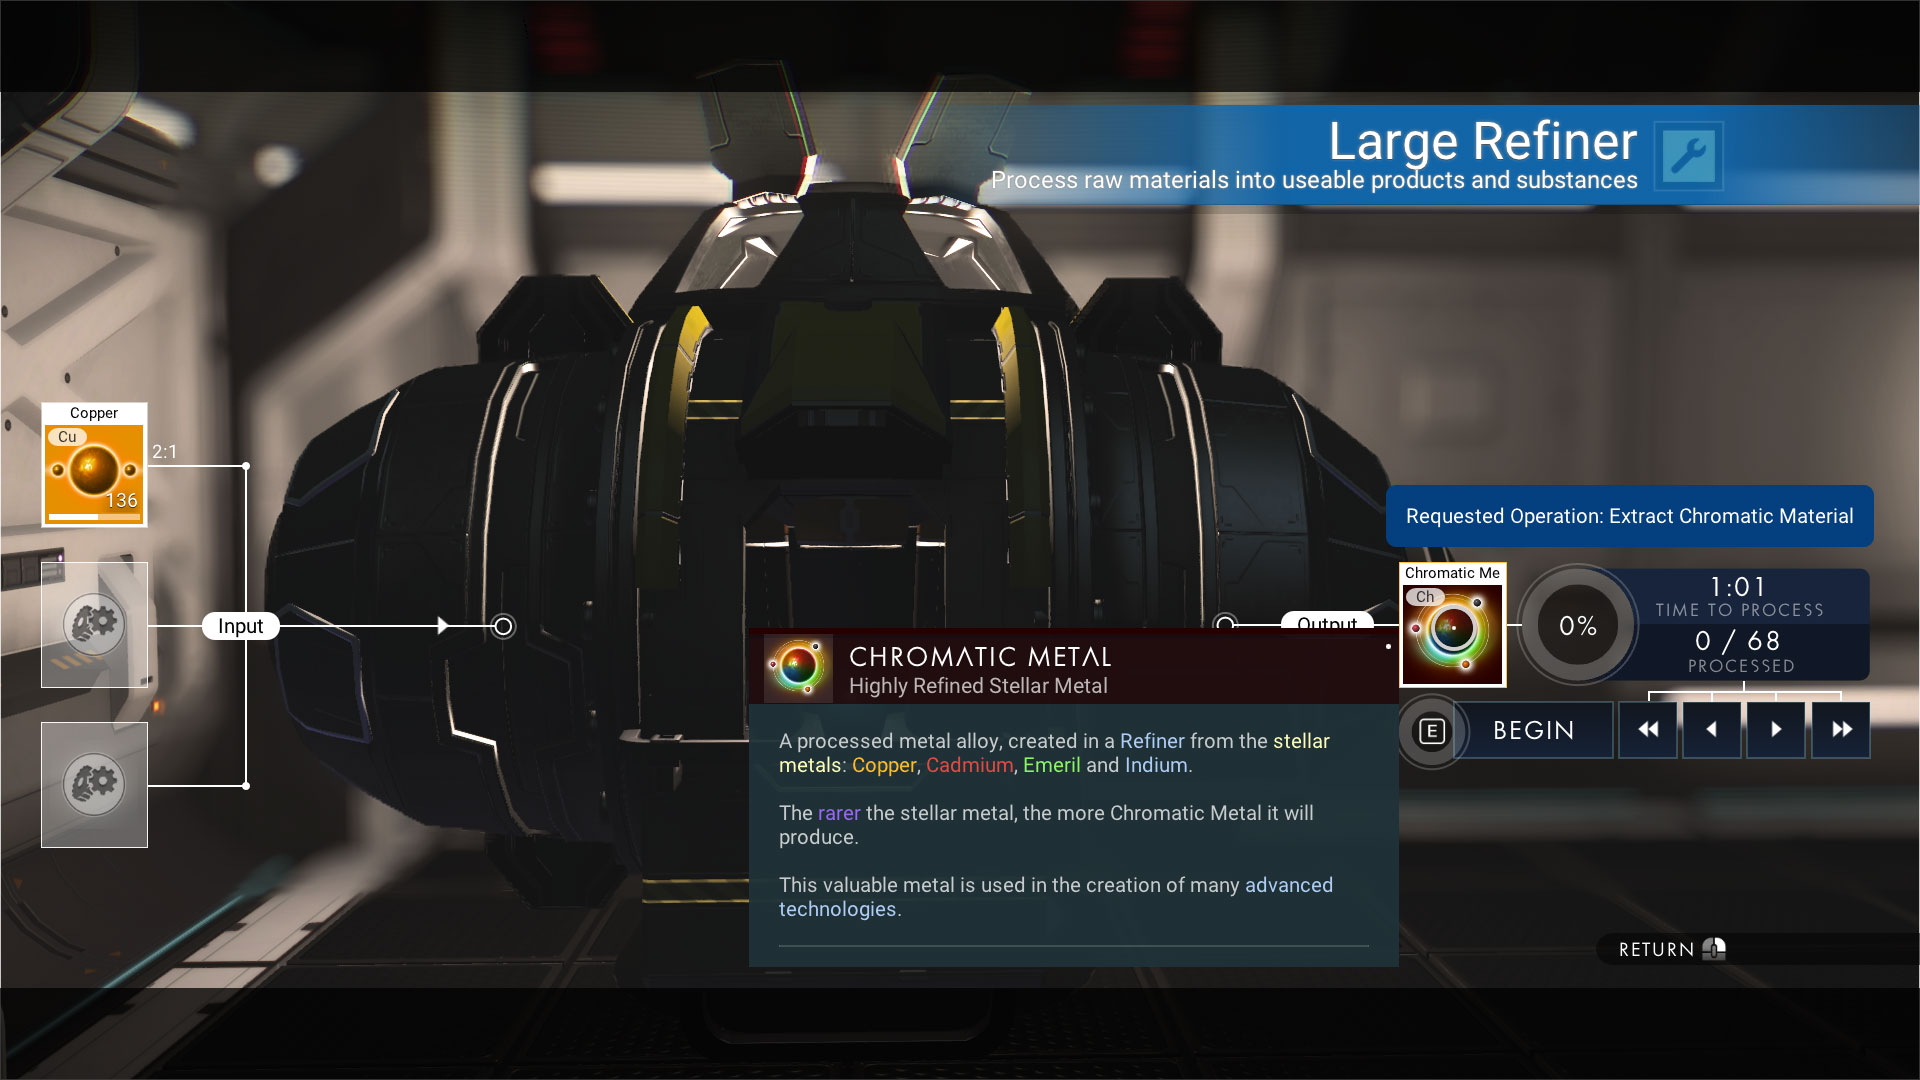 No Man's Sky Antimatter guide: Where to find Antimatter and